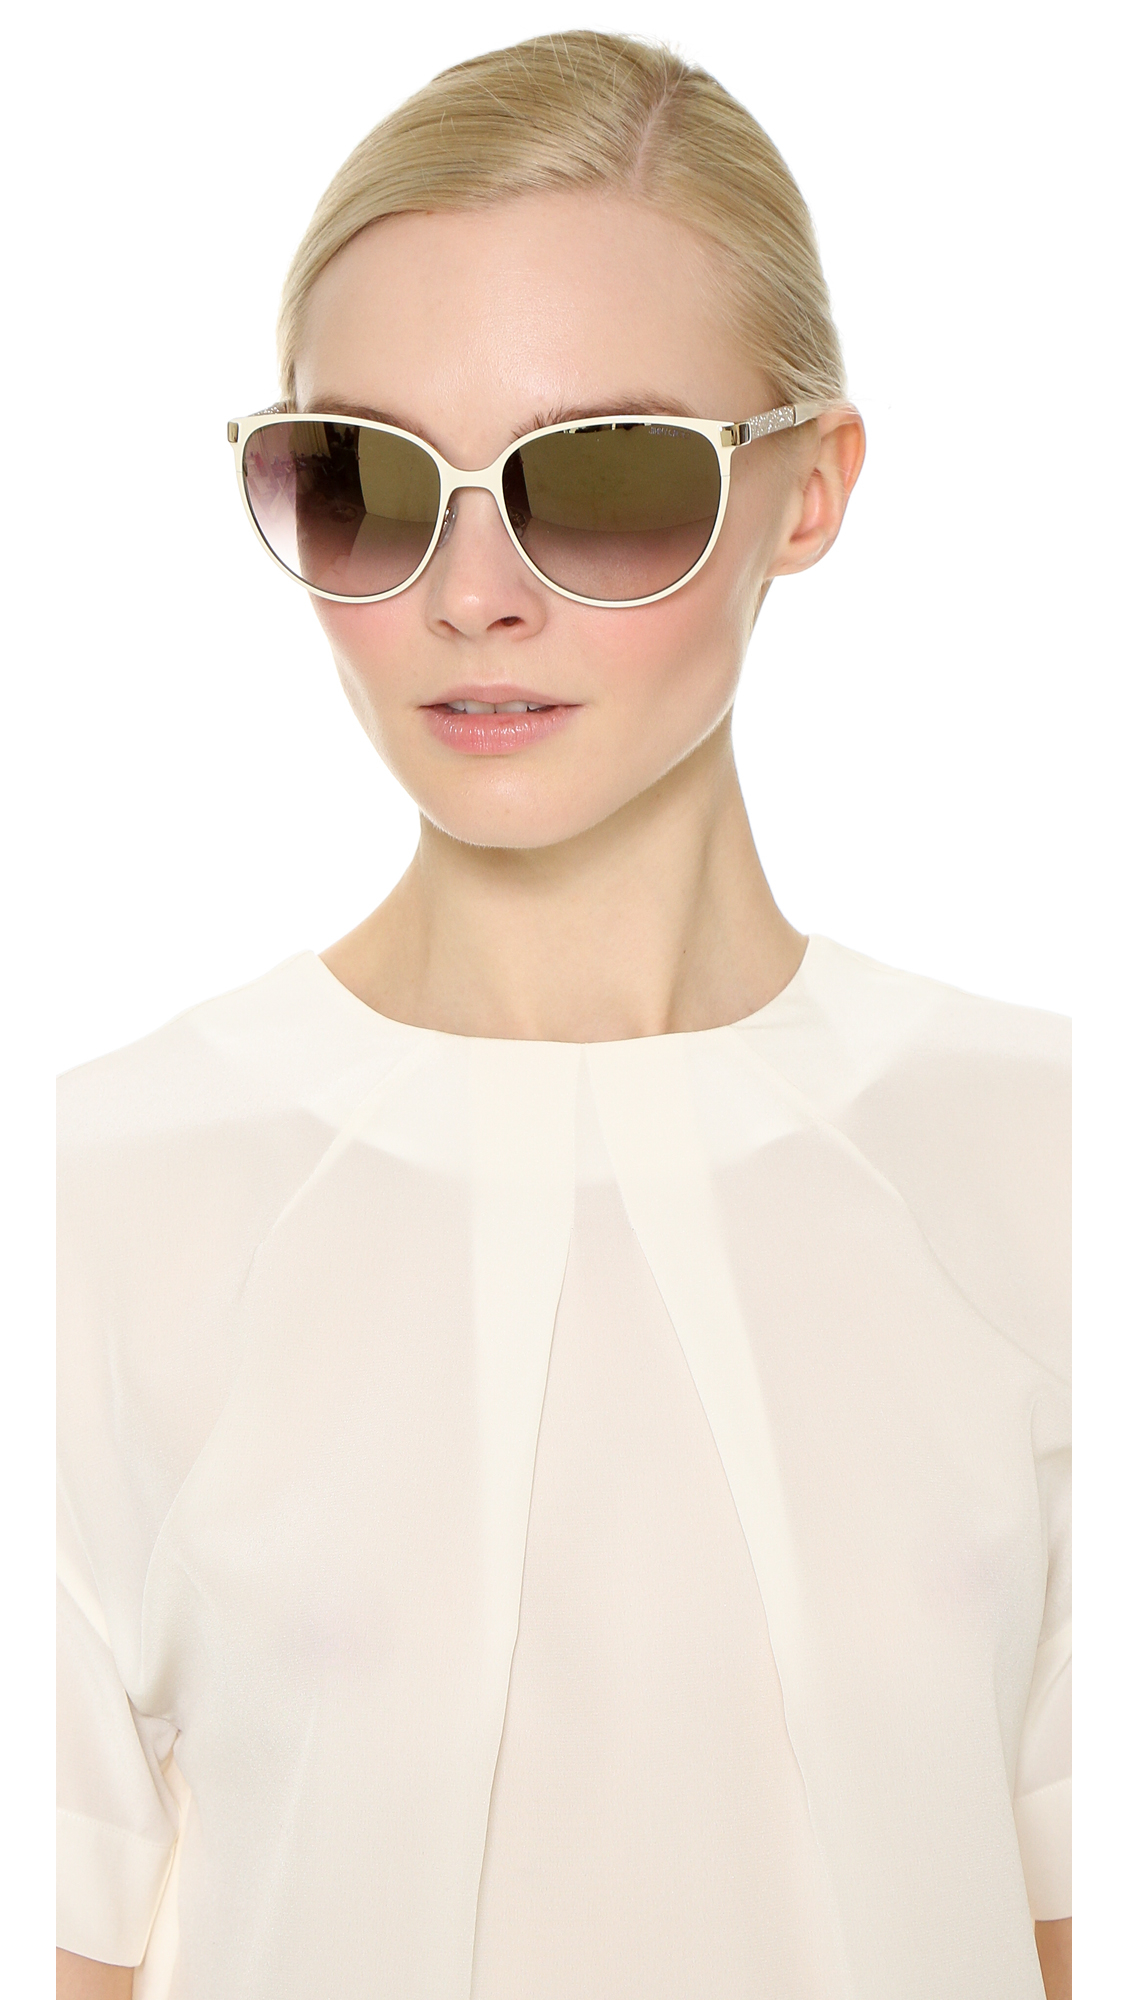 5dc238cdcf64 Lyst - Jimmy Choo Posie Sunglasses - Ivory brown in White